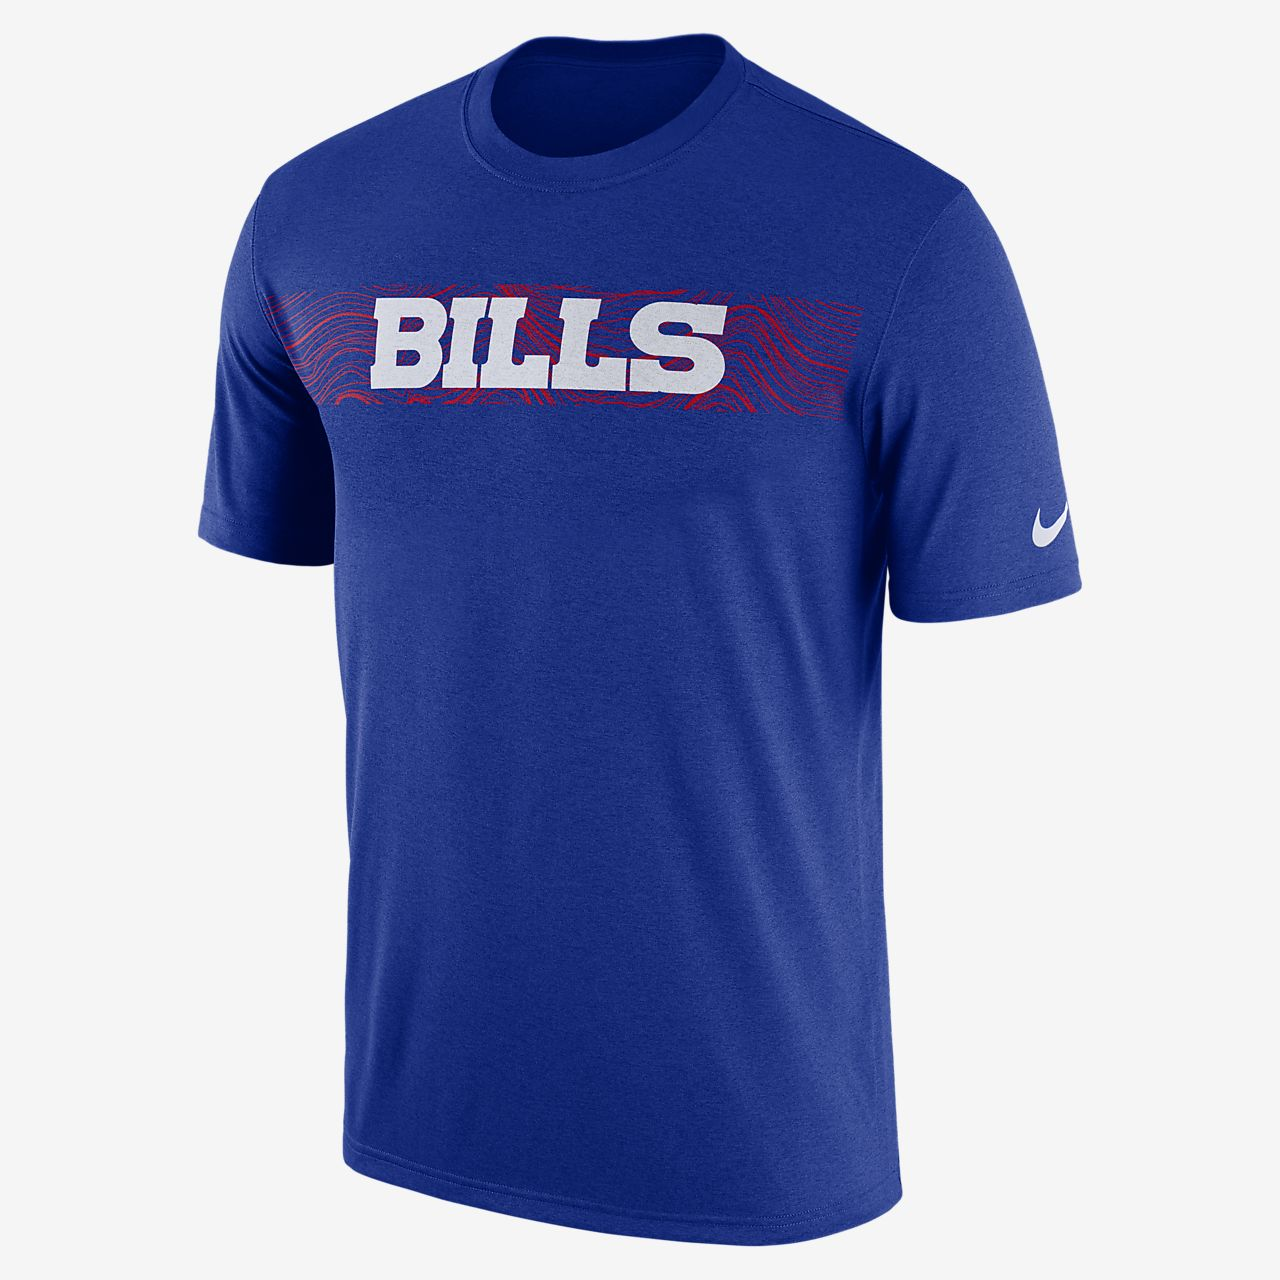 Tee-shirt Nike Dri-FIT Legend Seismic (NFL Bills) pour Homme